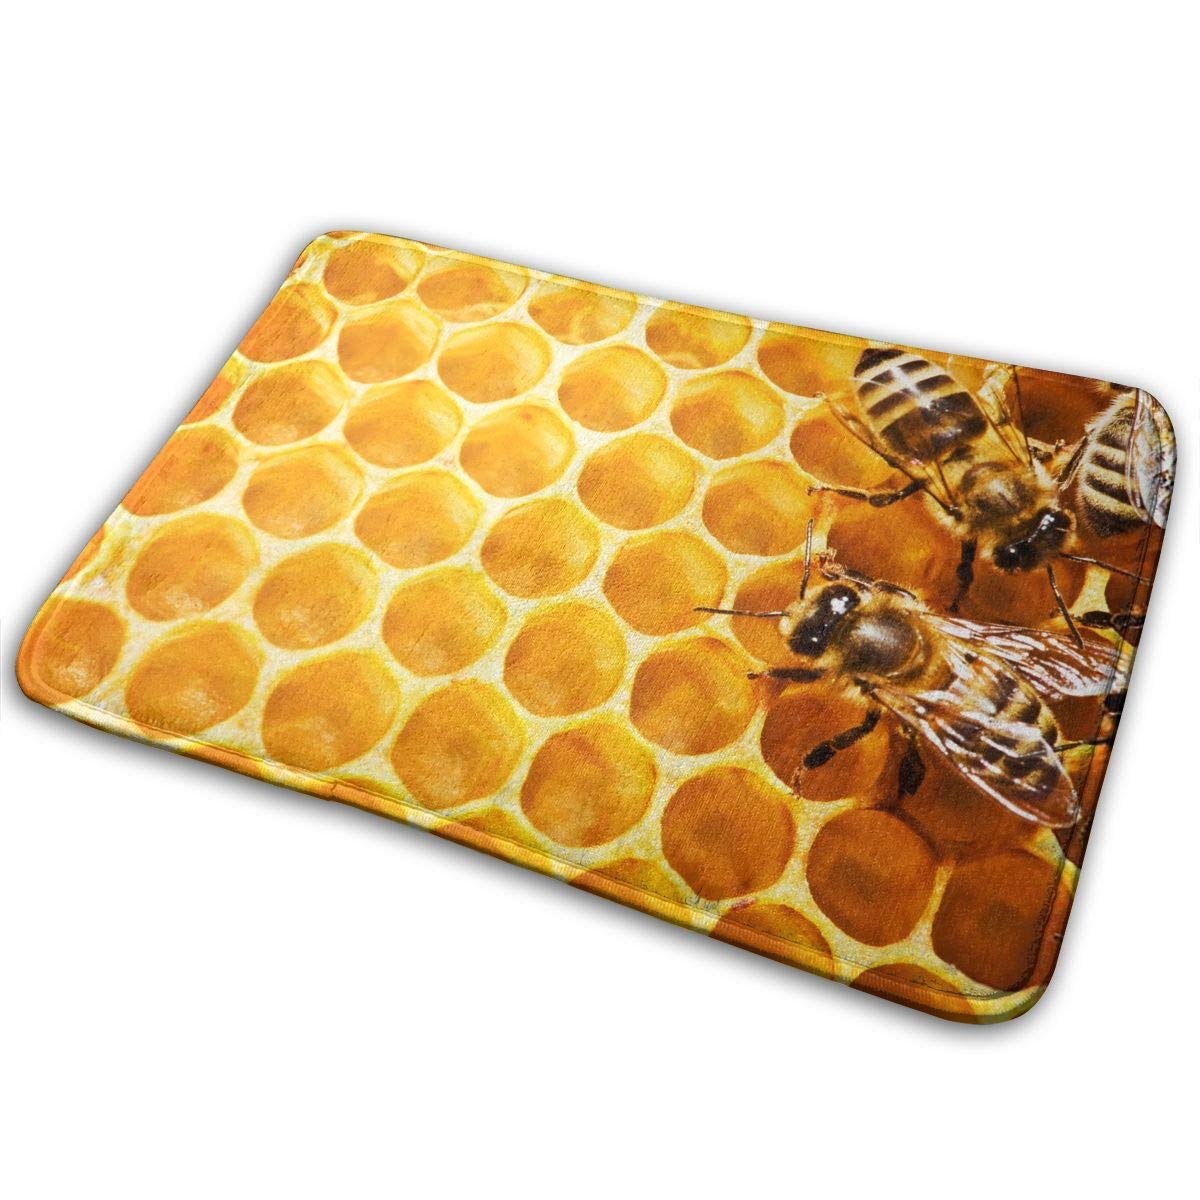 The Bee Hive,Non Slip Machine Washable Door Mats Bathroom Kitchen Rug Floor Mat Thicken Playmat Multi-Purpose Floorcover 31.5(L) X 19.7(W) Inch